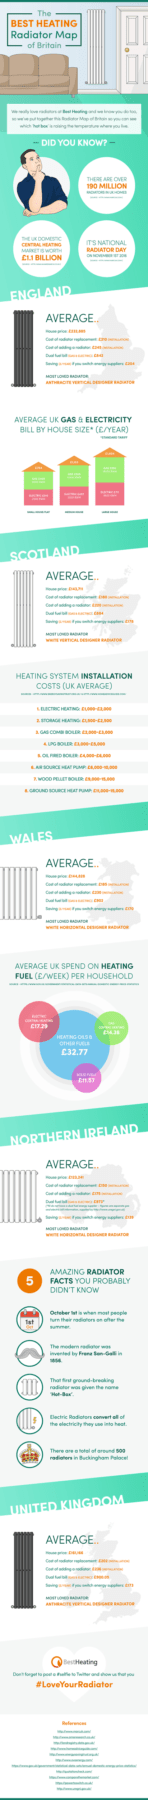 Infographic about radiators in the UK